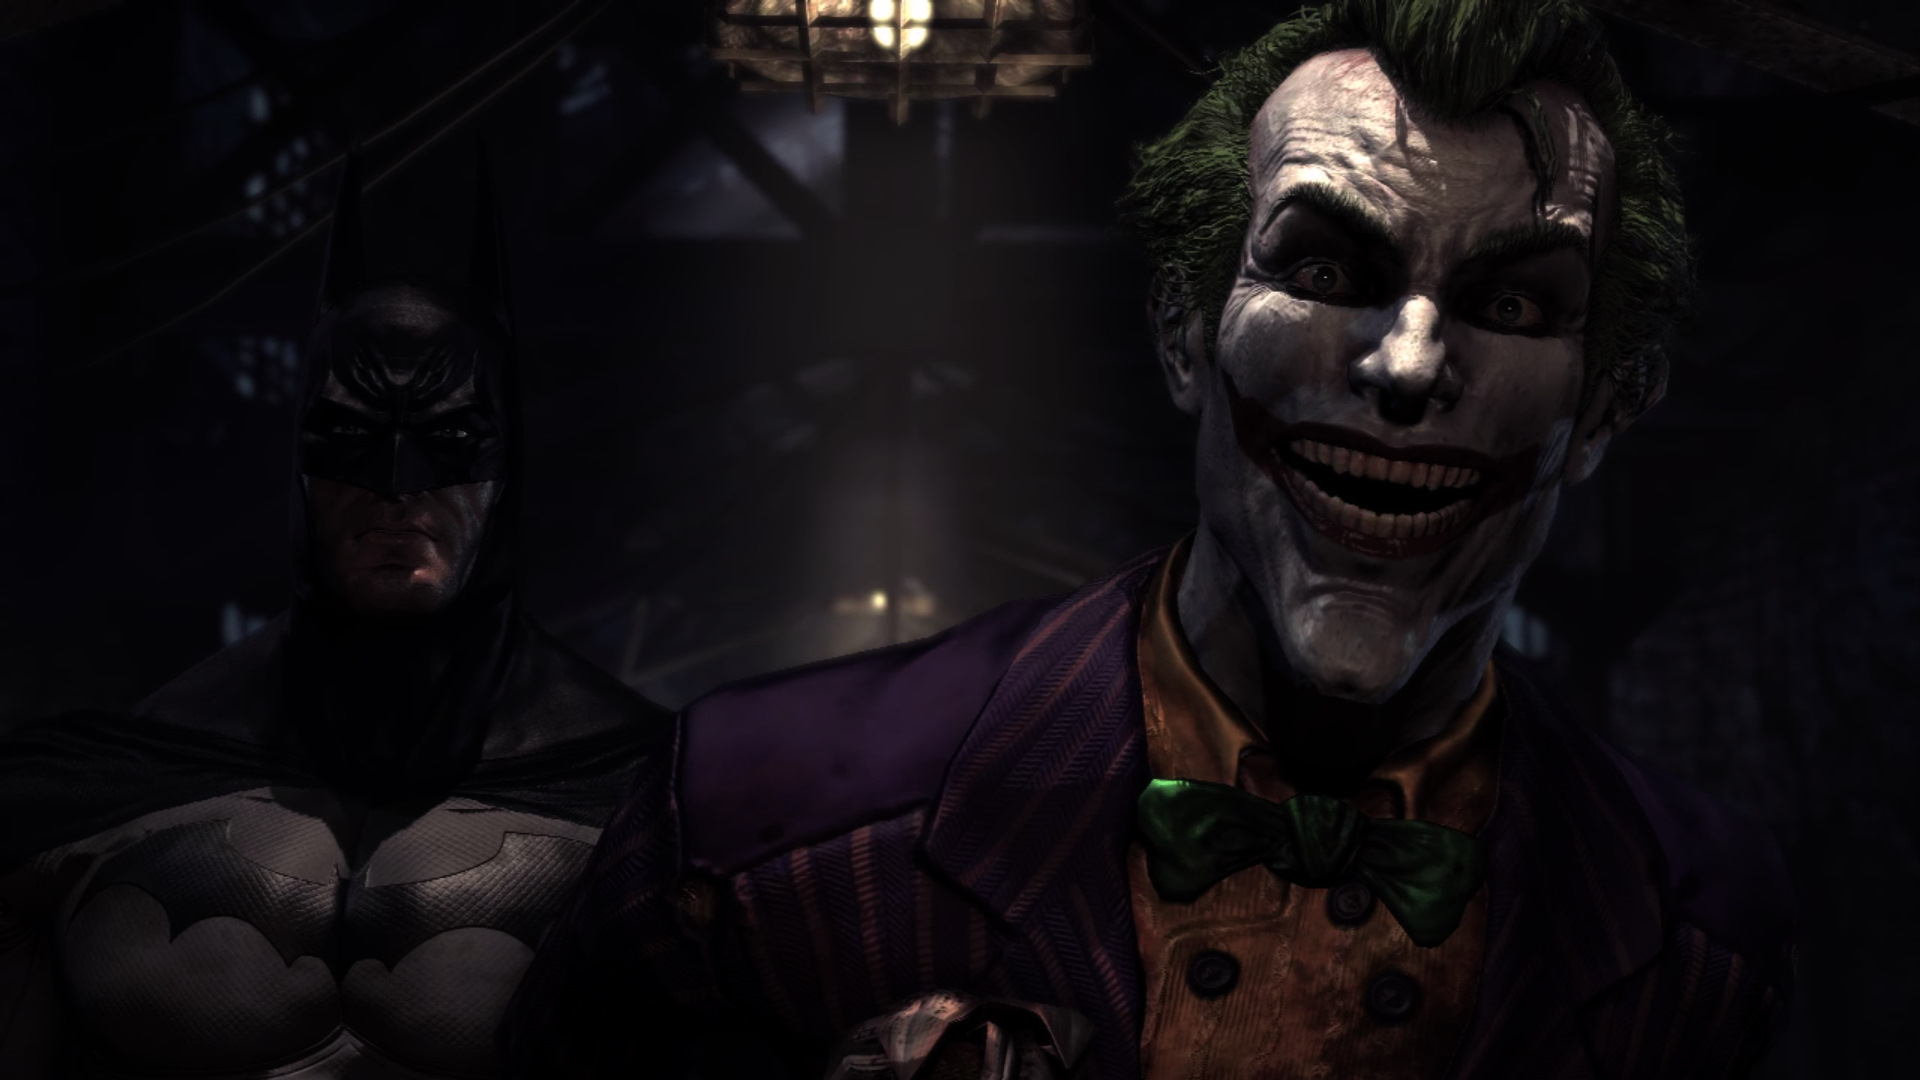 The Joker And Batman Wallpapers HD wallpapers   The Joker And Batman 1920x1080